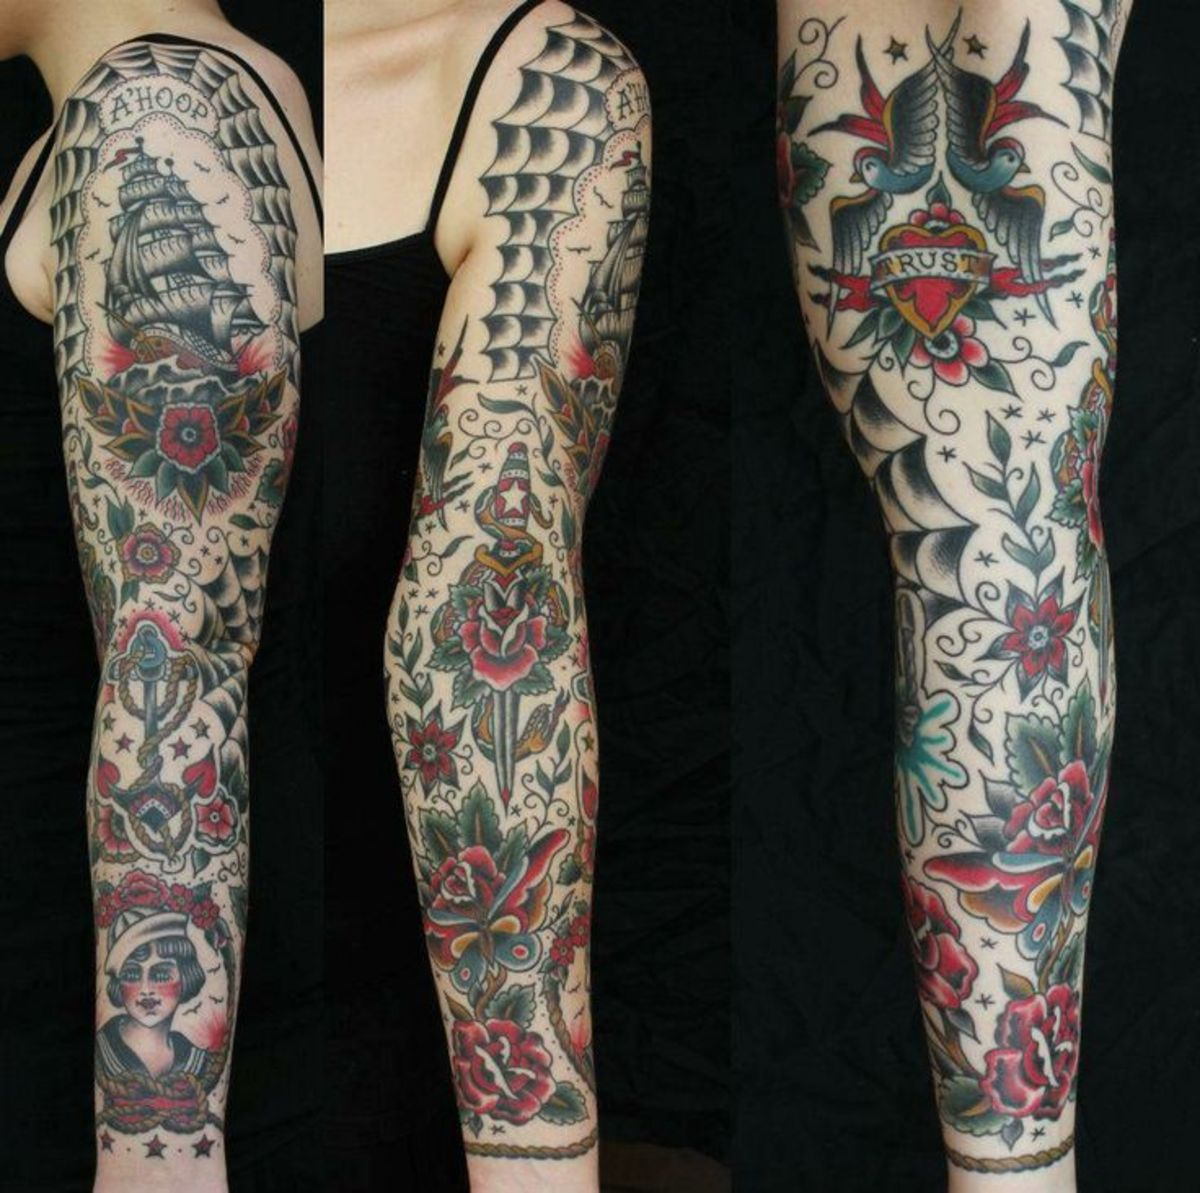 Example American Tattoo Sleeve, of pins and stars, and spiderwebs; American Traditional tattoos tend to require fillers in between the actual tattoos